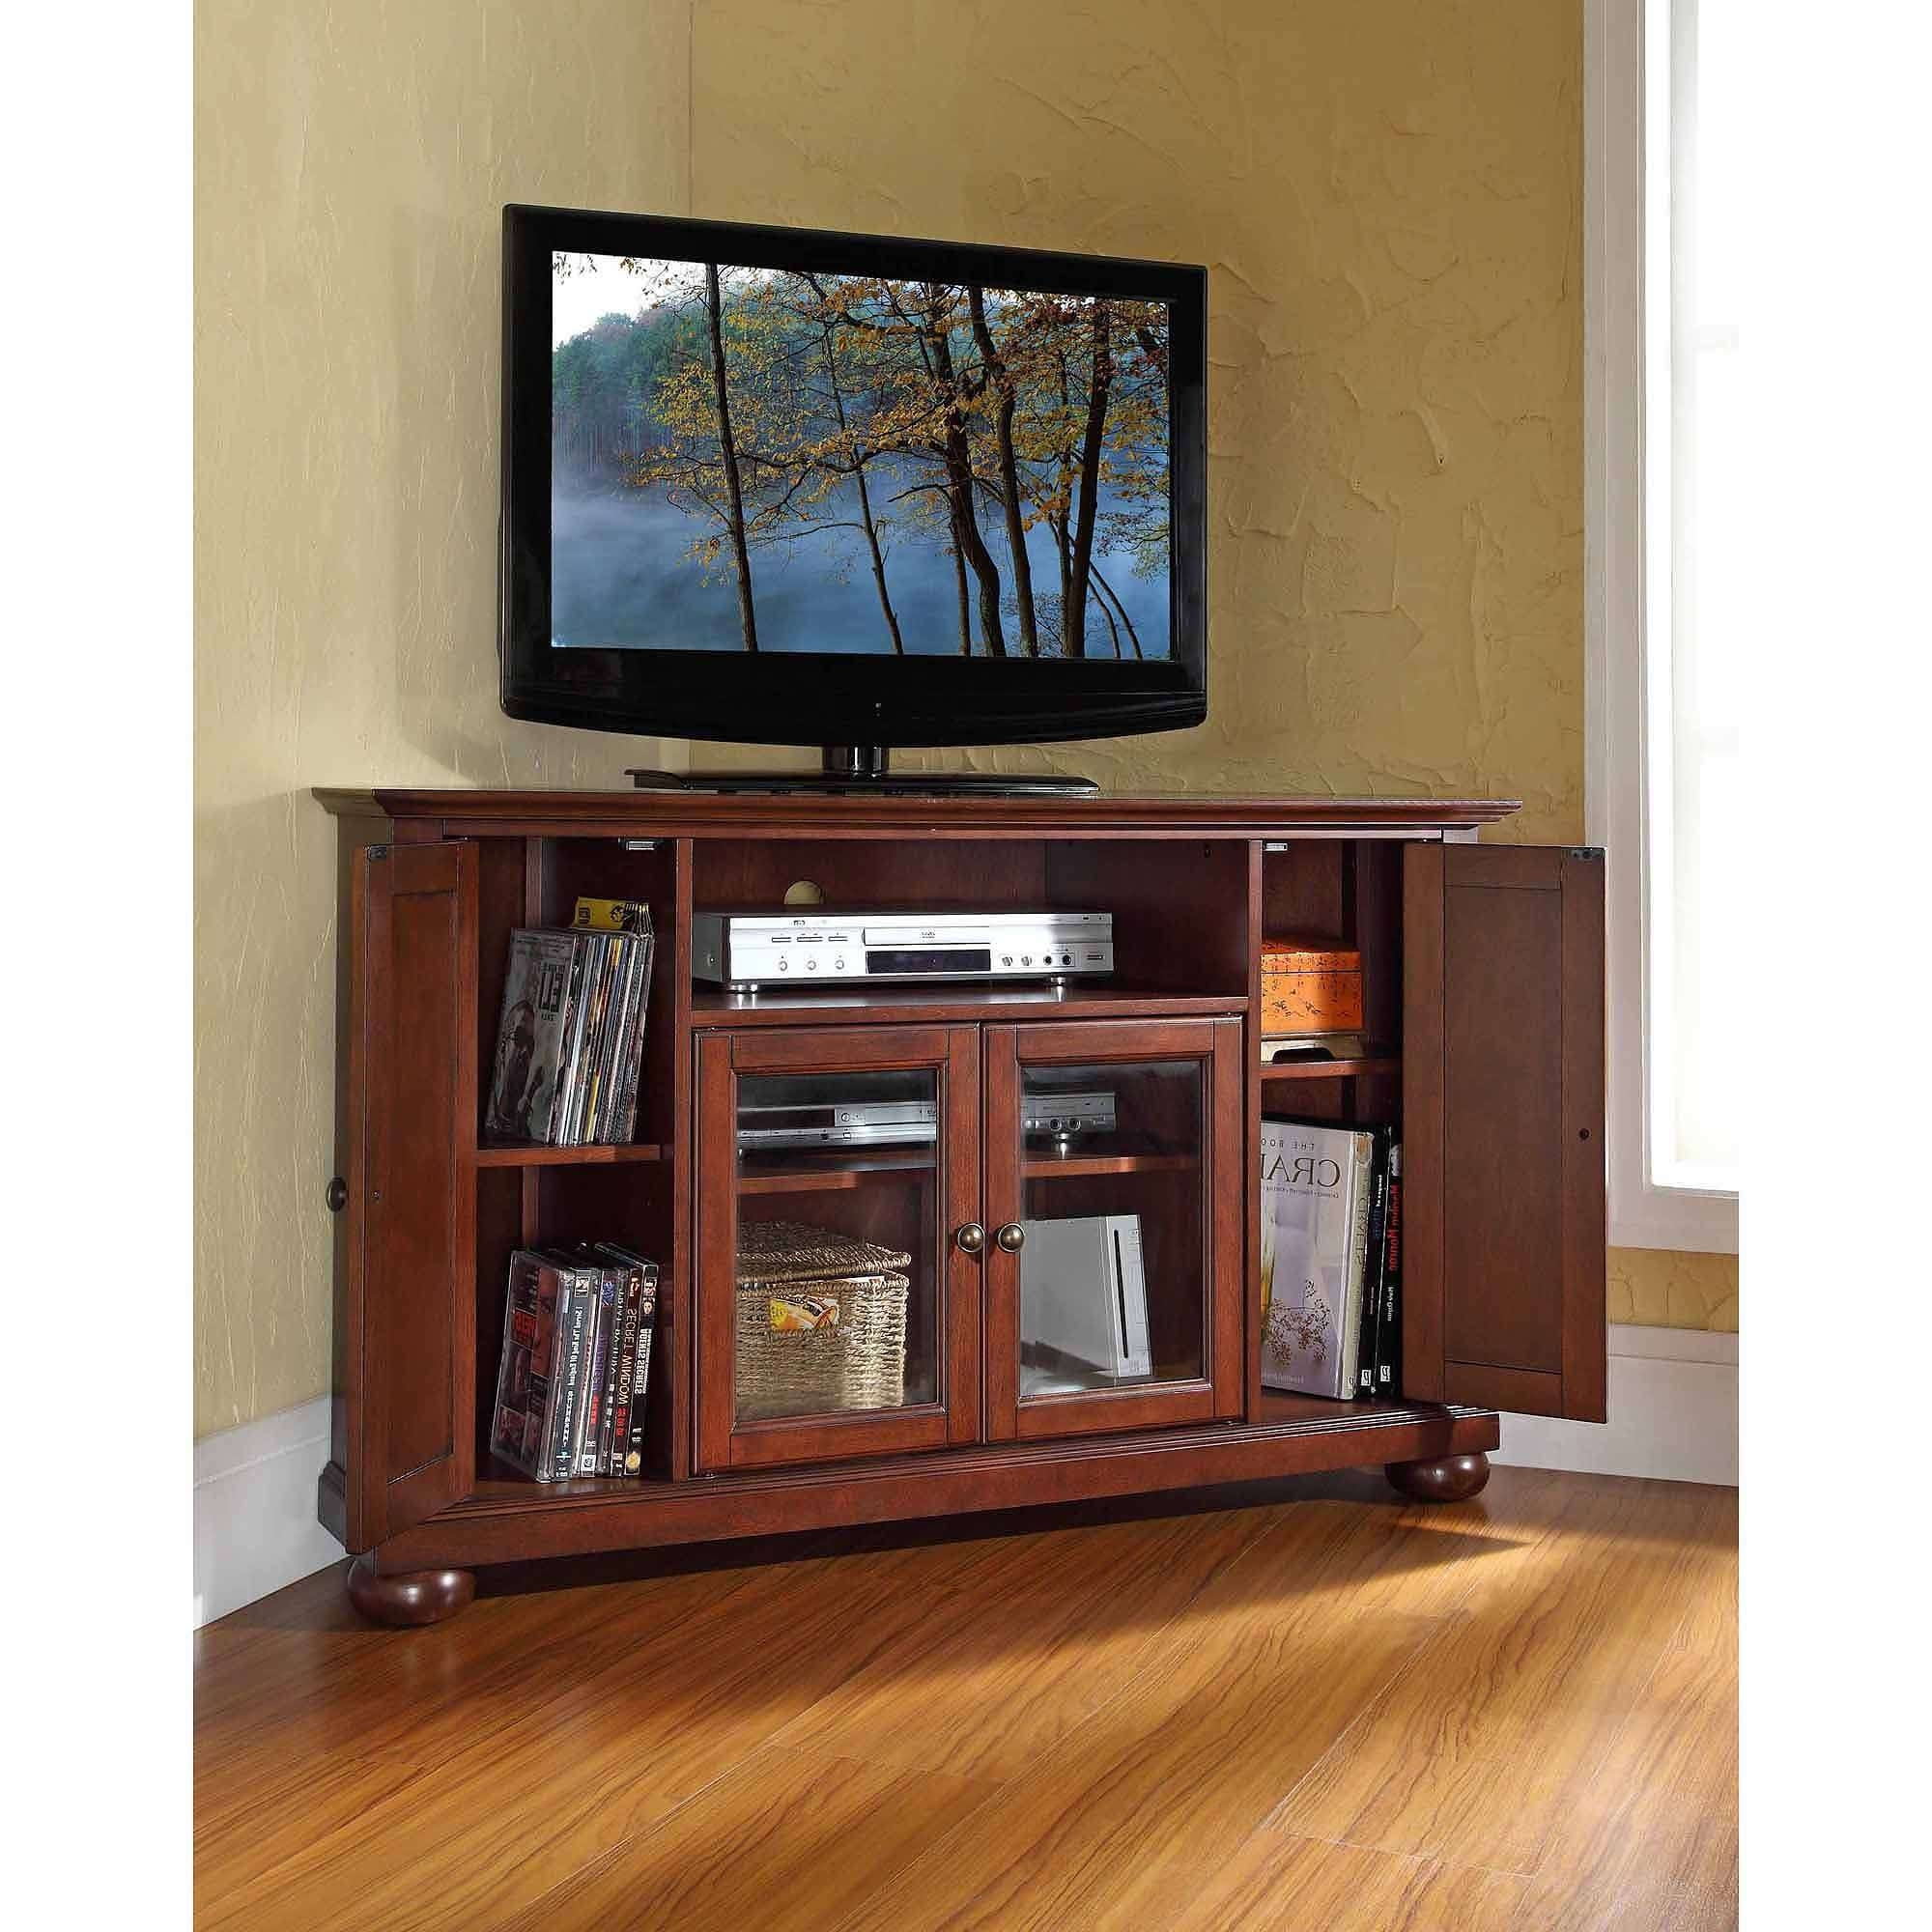 Tv Stand : 32 Unusual 55 Inch Corner Tv Stand With Mount Images Within 32 Inch Corner Tv Stands (View 14 of 15)